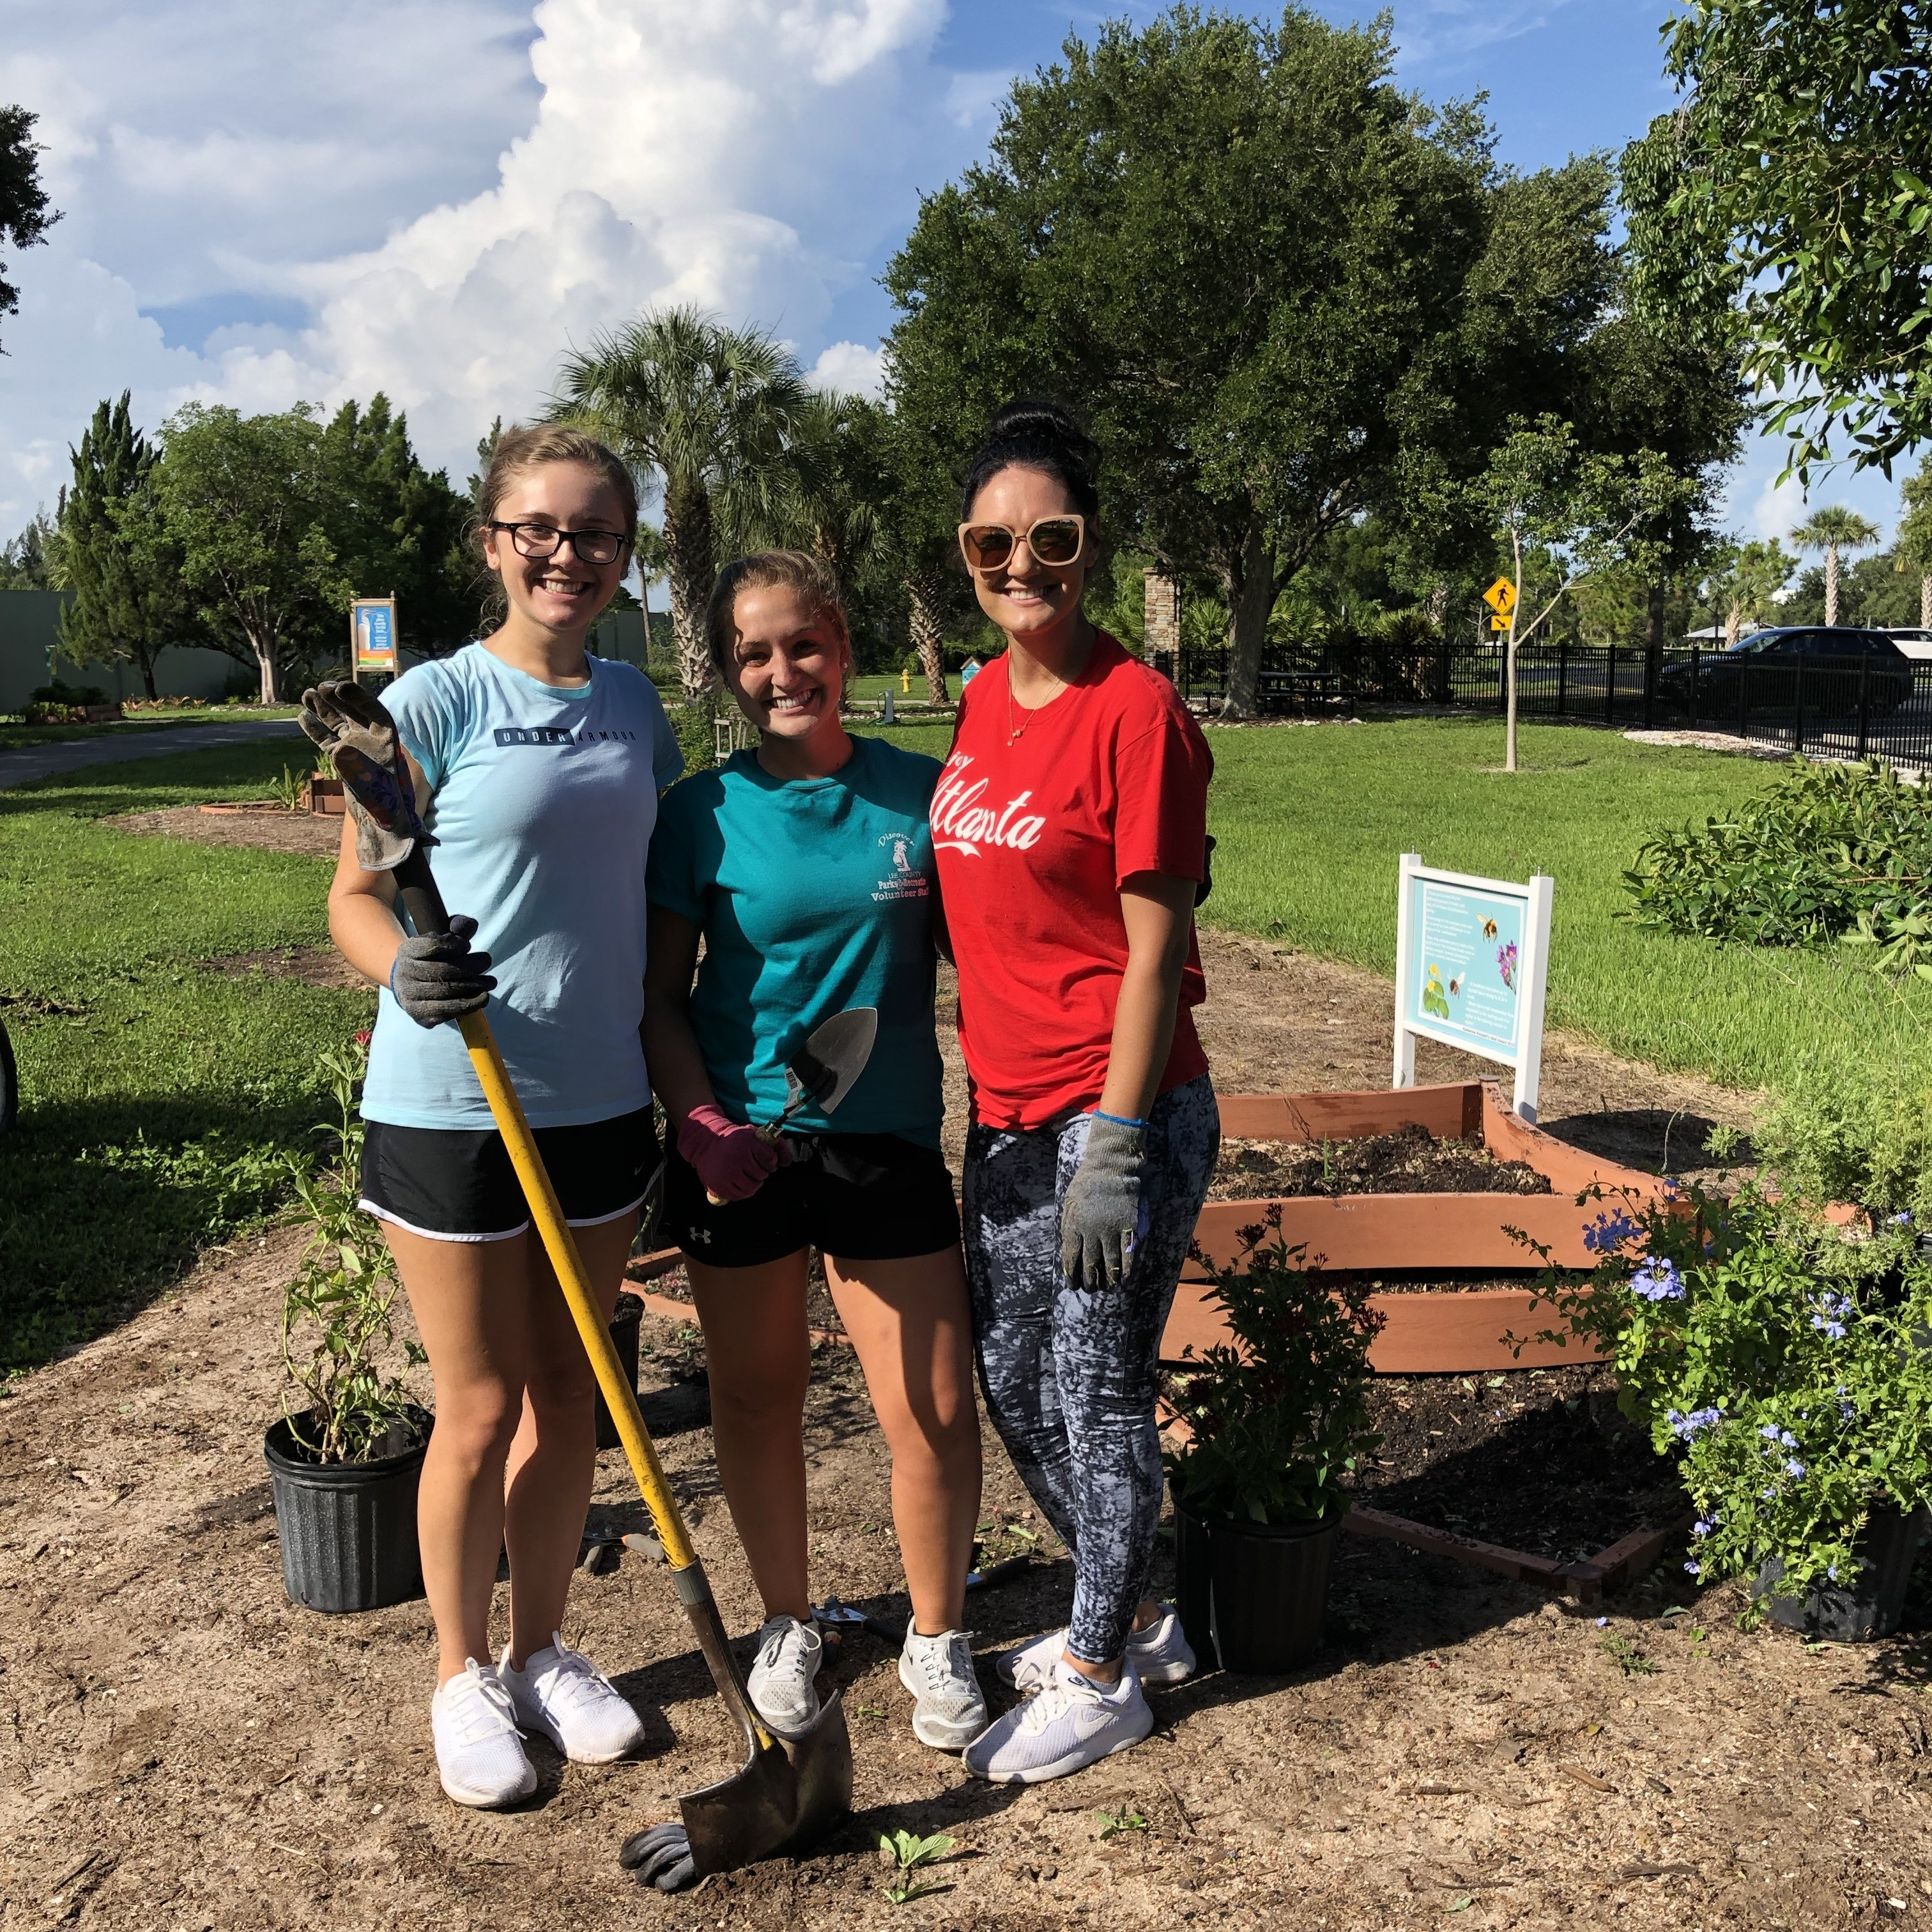 Student volunteers at Lakes Park rocked the gardens on July 23rd - thank you Gabby, Michelle, and Sarah!